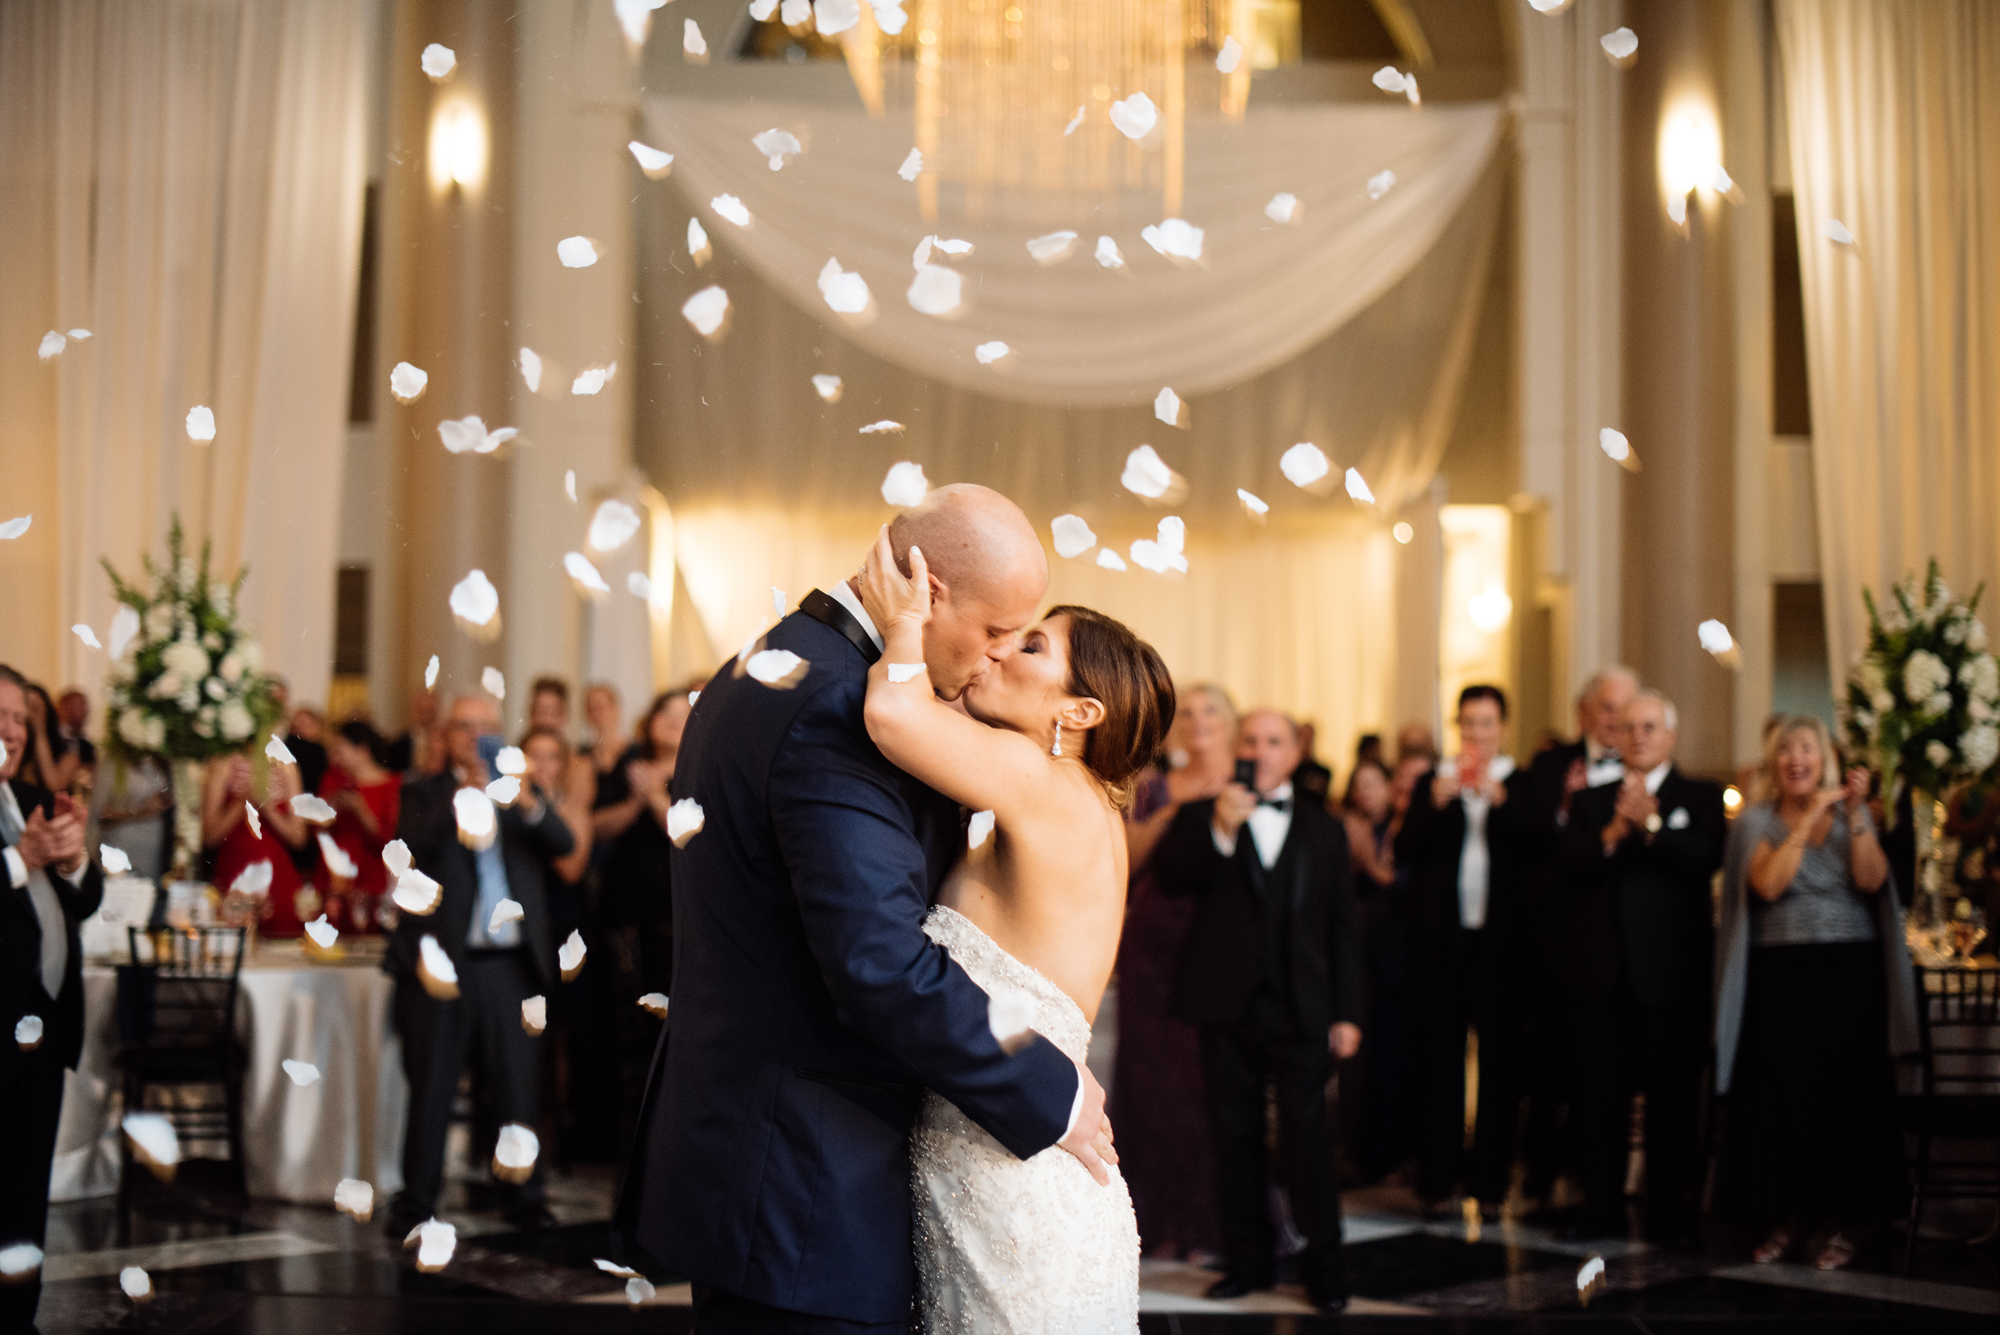 Allie and Ryan's Elegant Philadelphia Wedding at the Curtis Center | www.aprillynndesigns.com